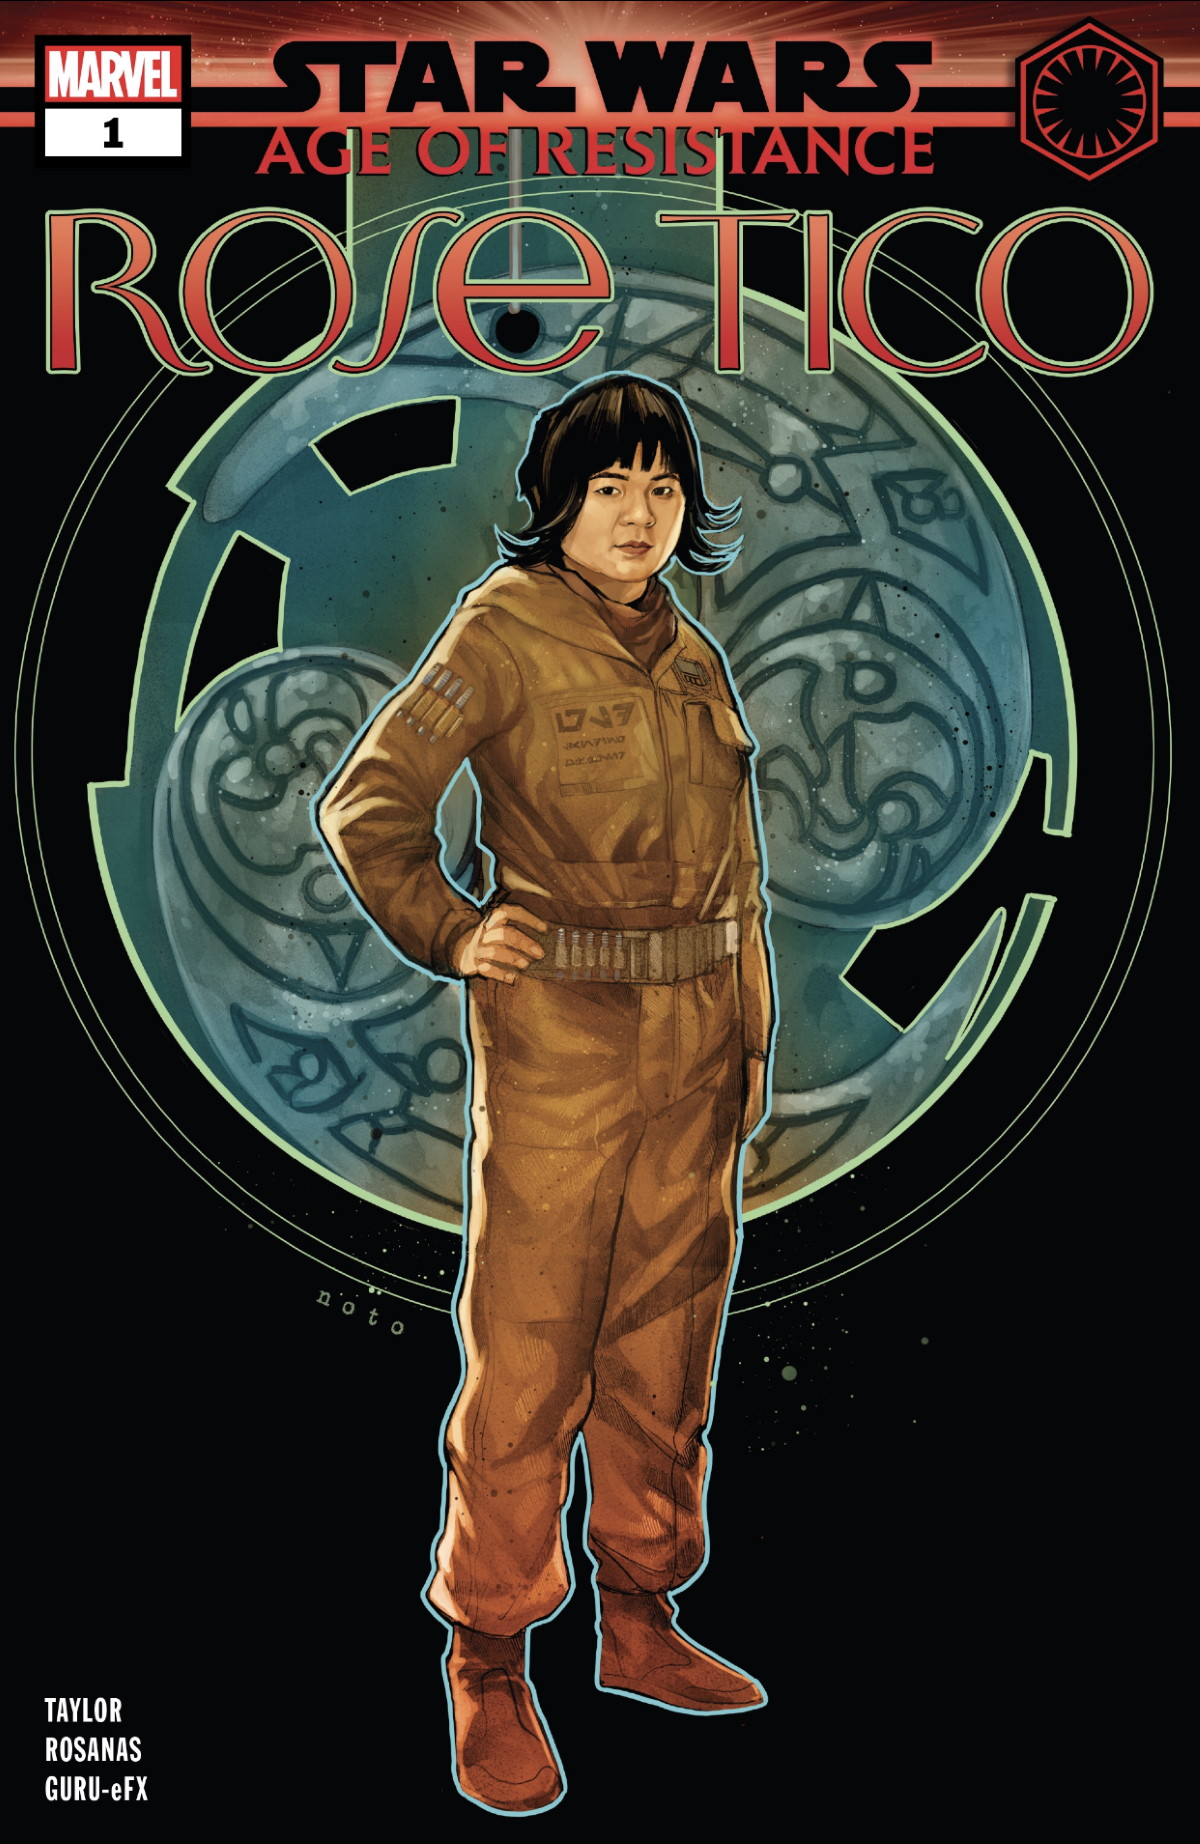 Star Wars: Age of Resistance - Rose Tico #1 Cover